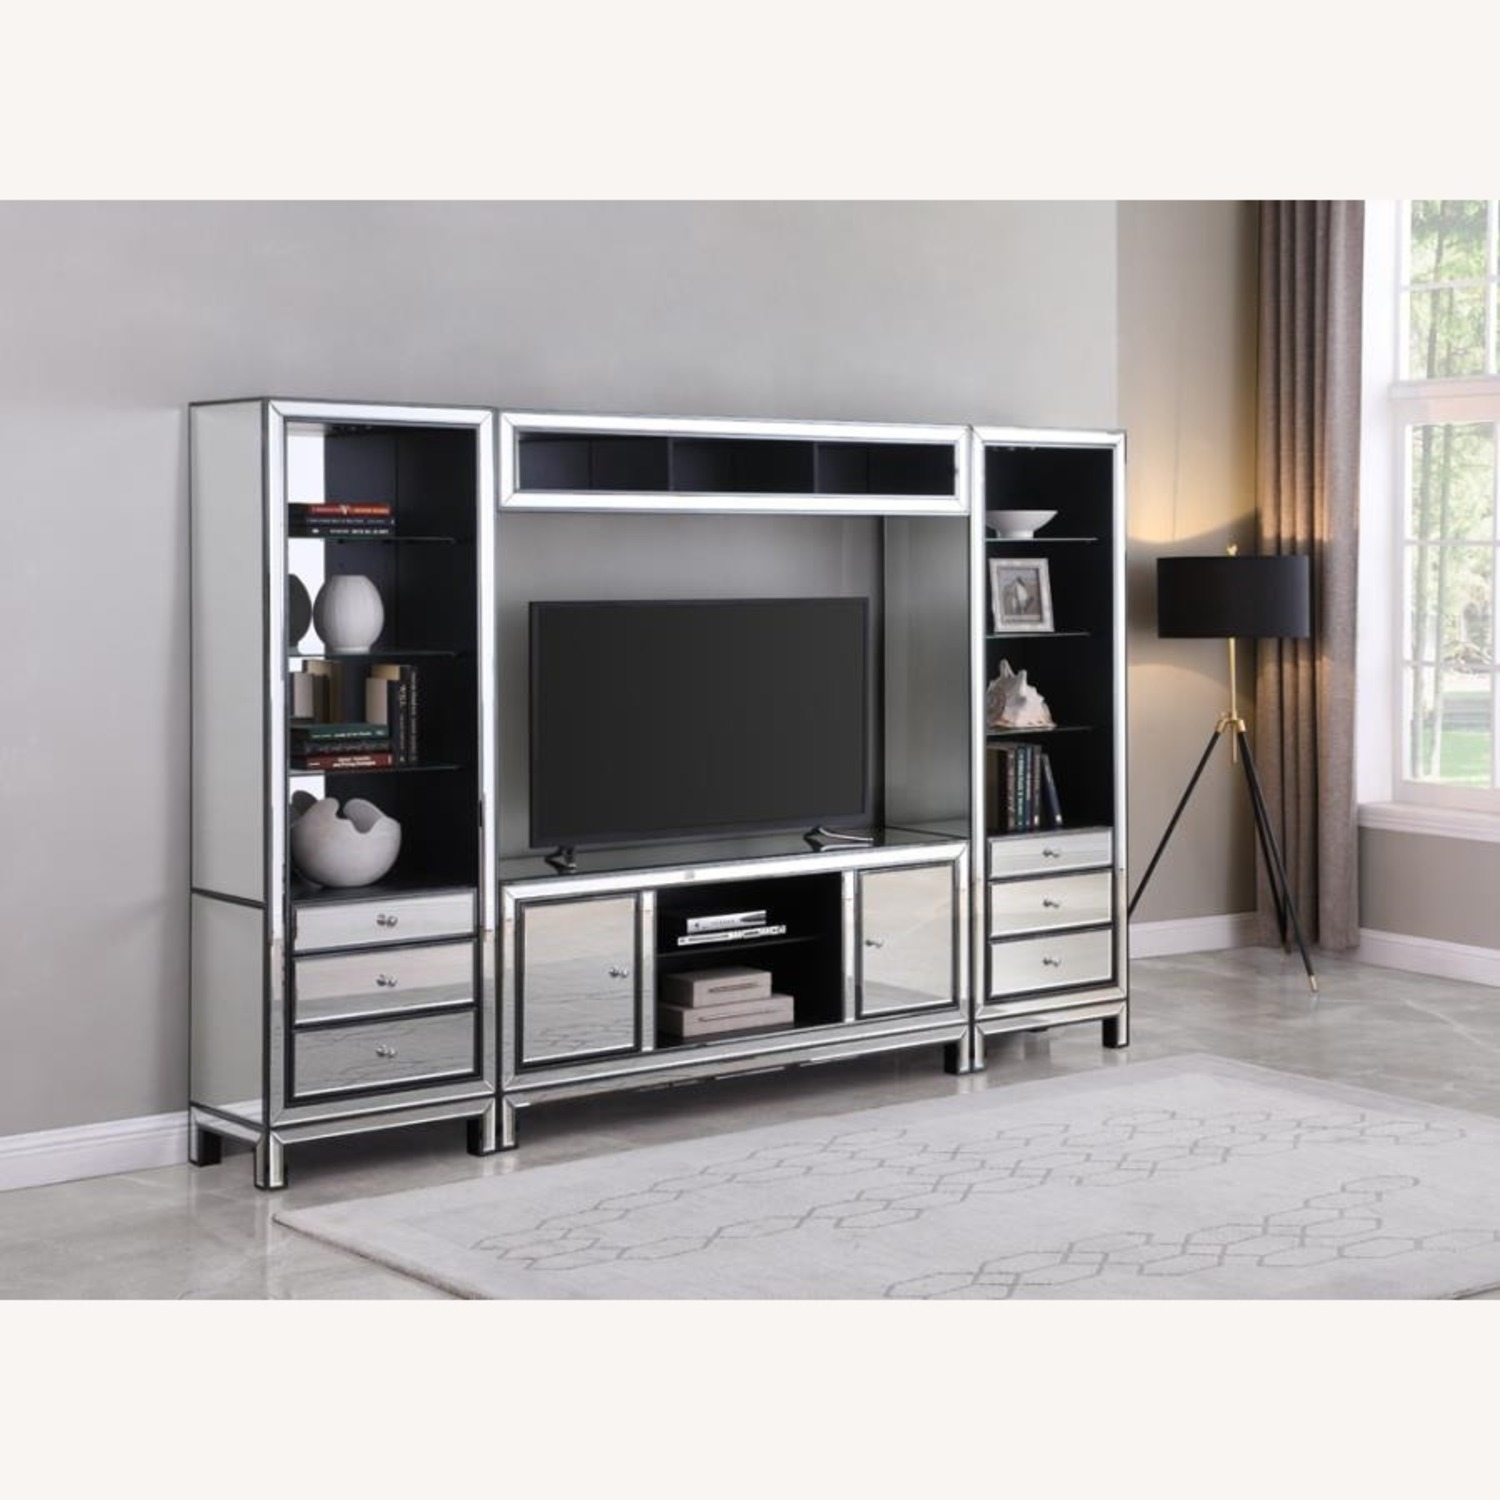 Media Tower W/ Glass Shelves In Silver Finish - image-2